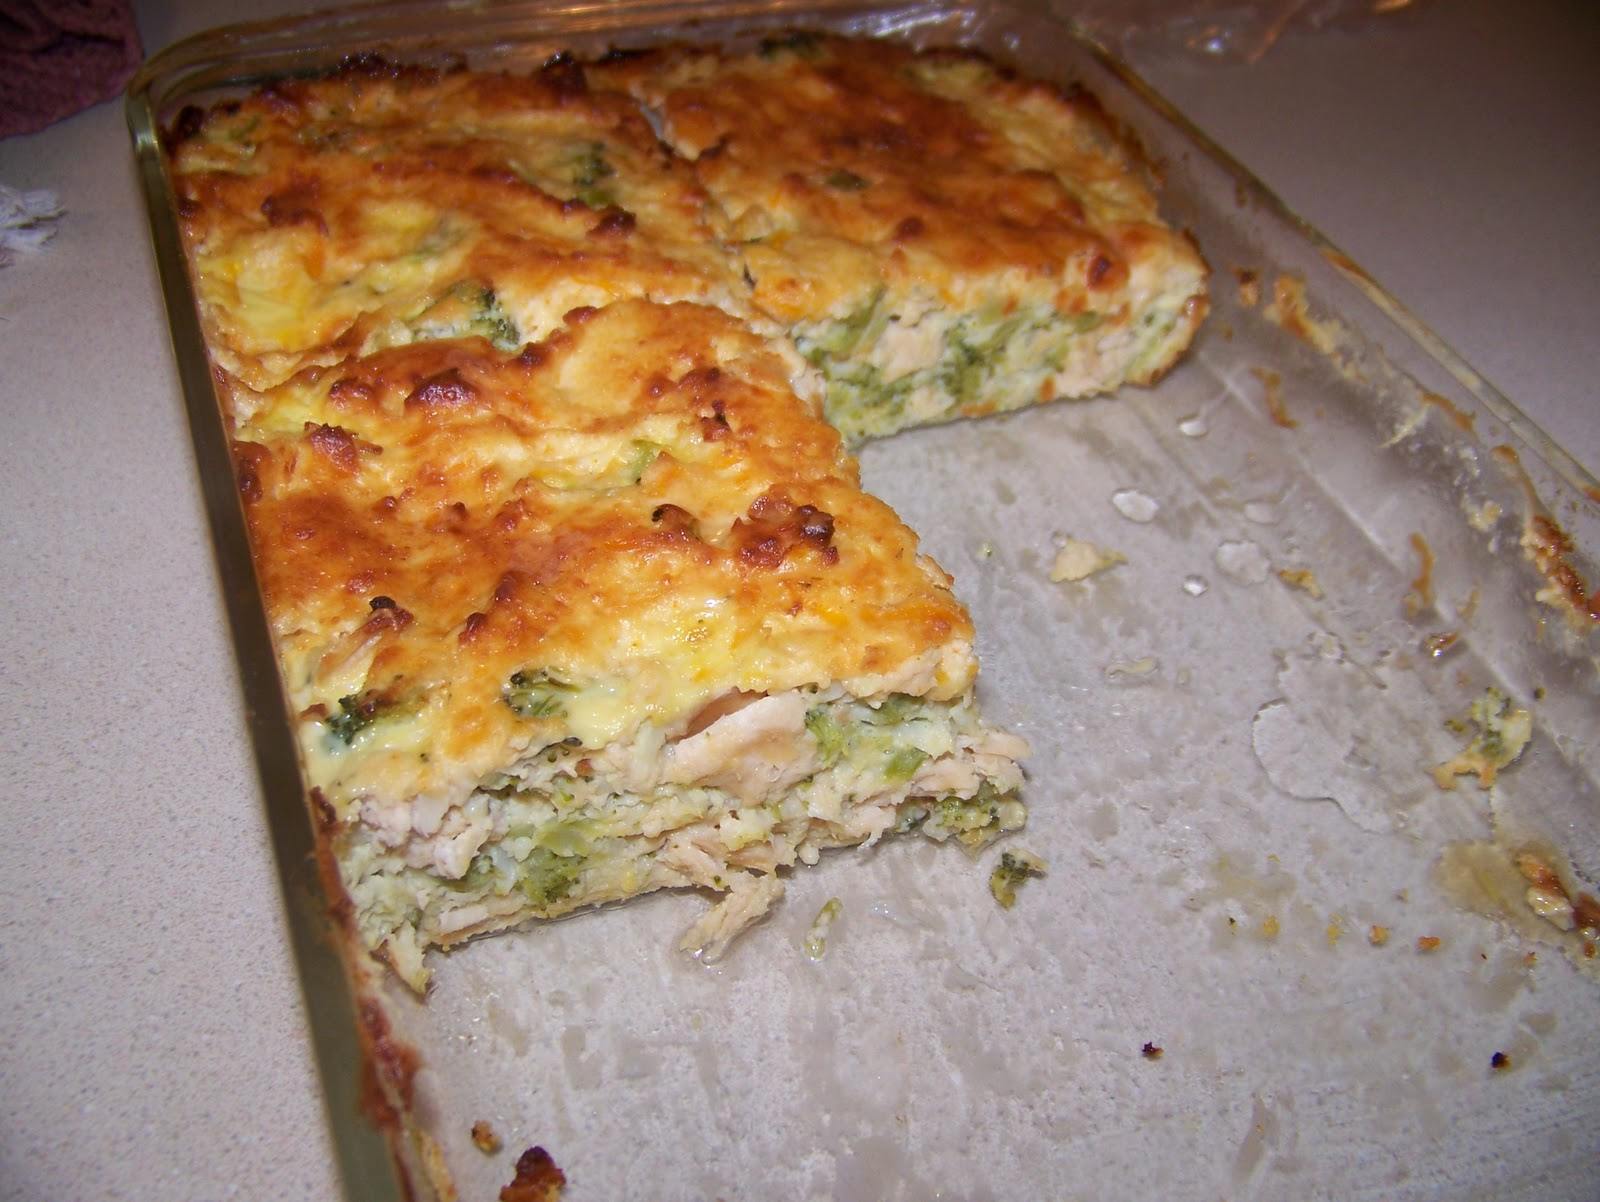 ... Low Carb Kitchen: Chicken and Broccoli Quiche with Parmesan Topping